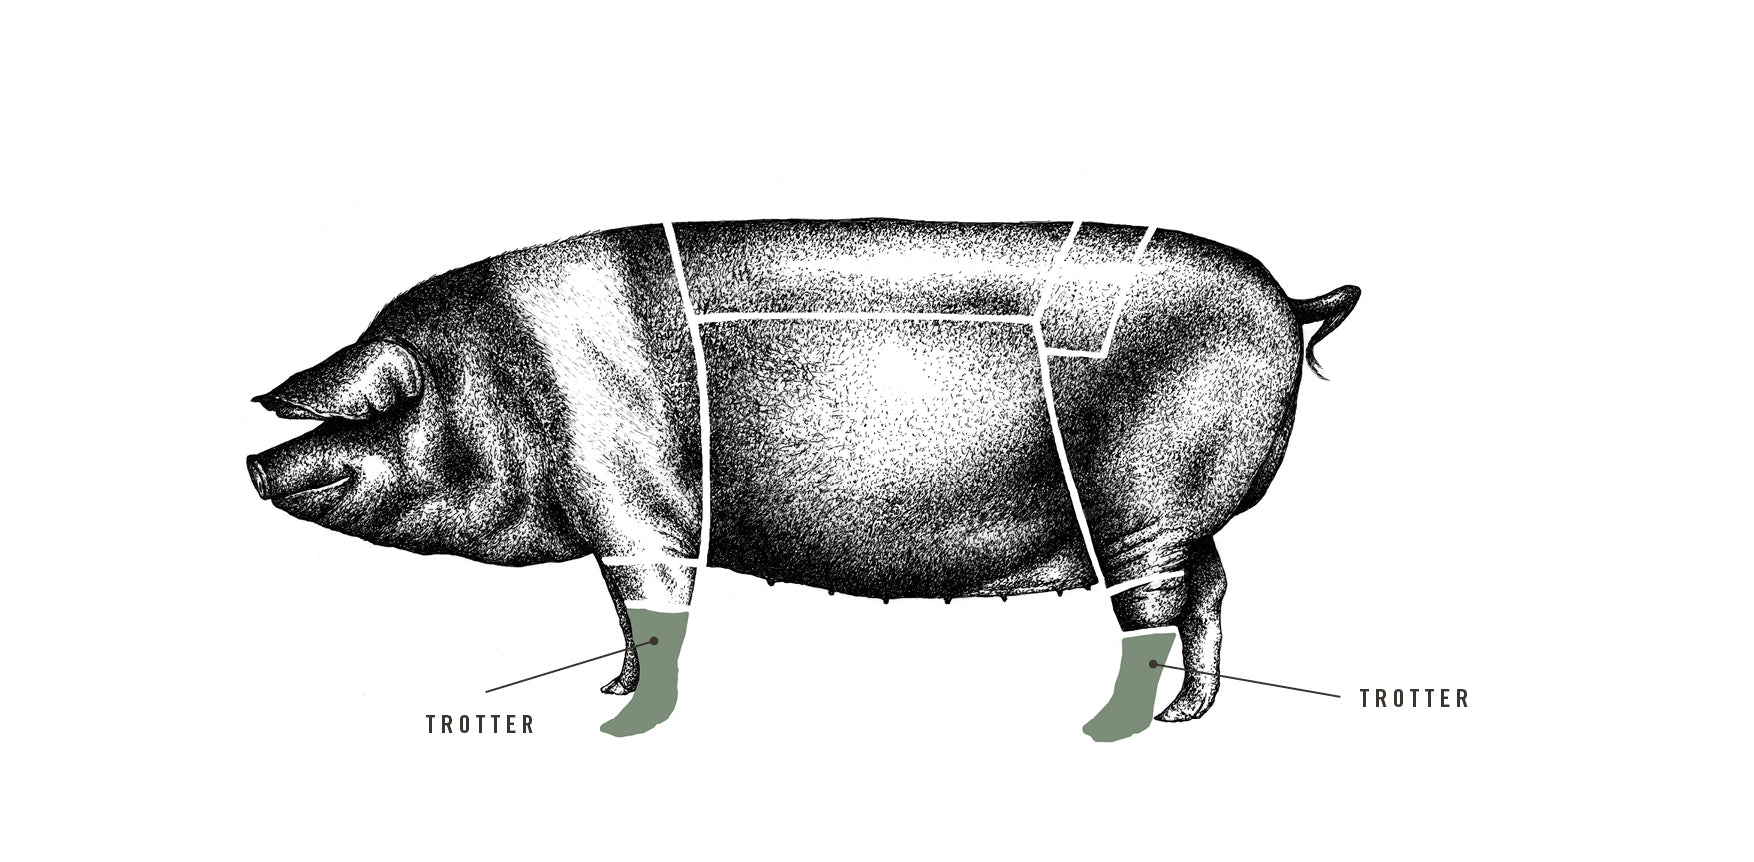 Saddleback Pig's Trotter meat cuts diagram